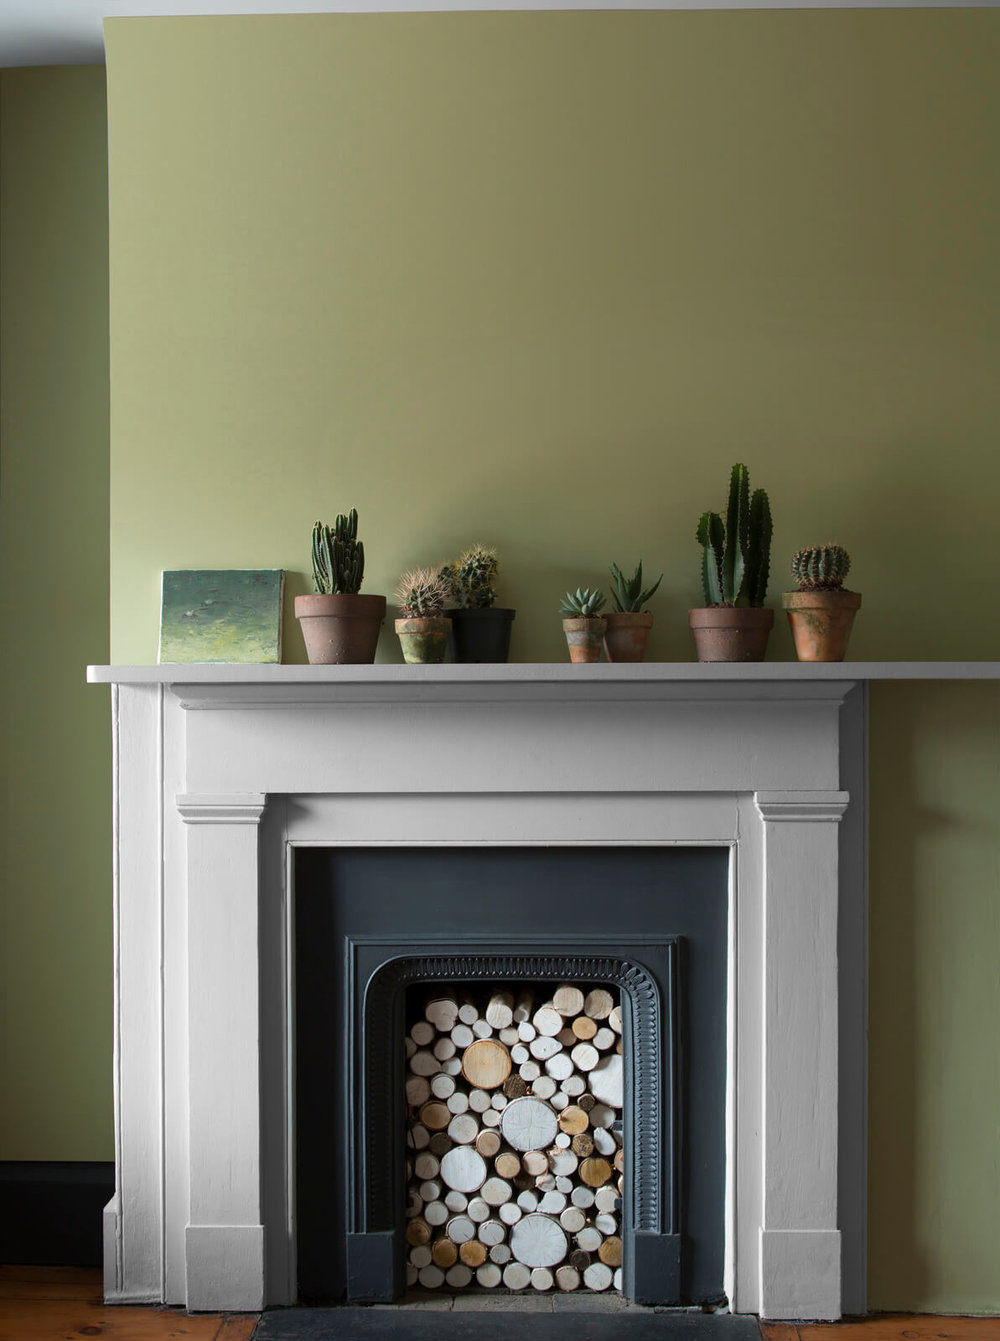 Fireplace_with_Green_Wall.jpg